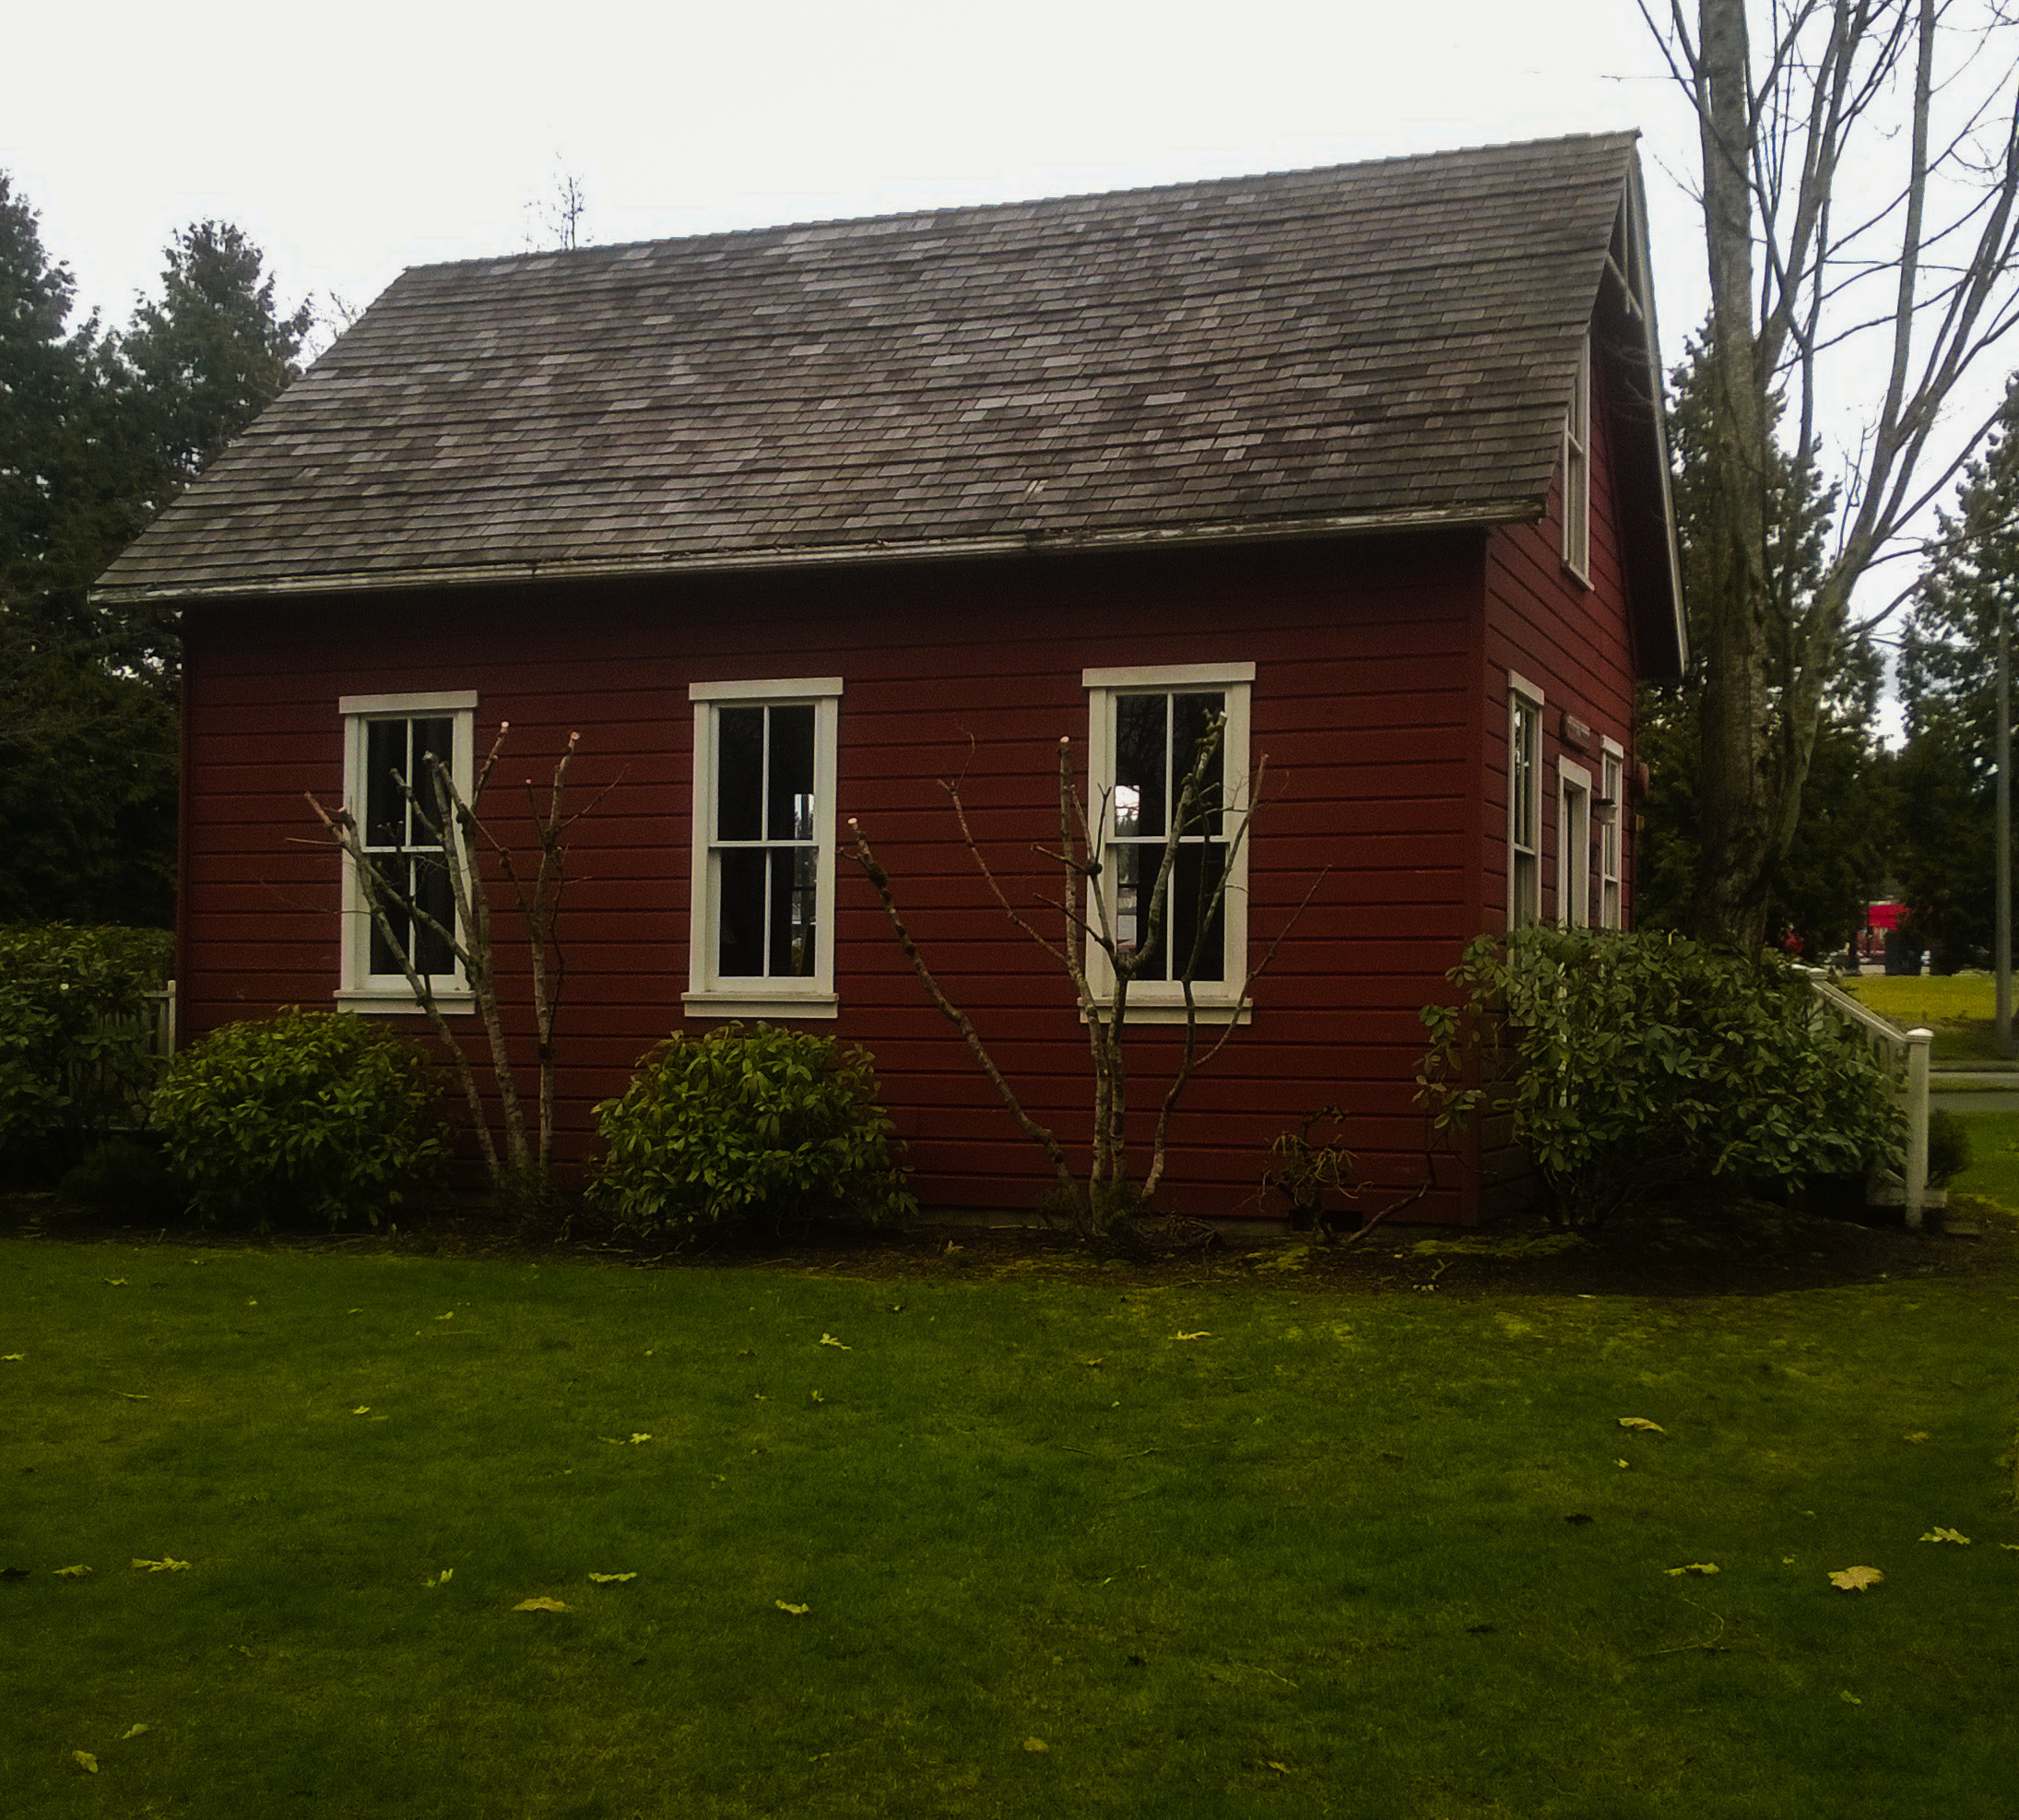 Bothell's first schoolhouse, 1885, now in the Park at Bothell Landing